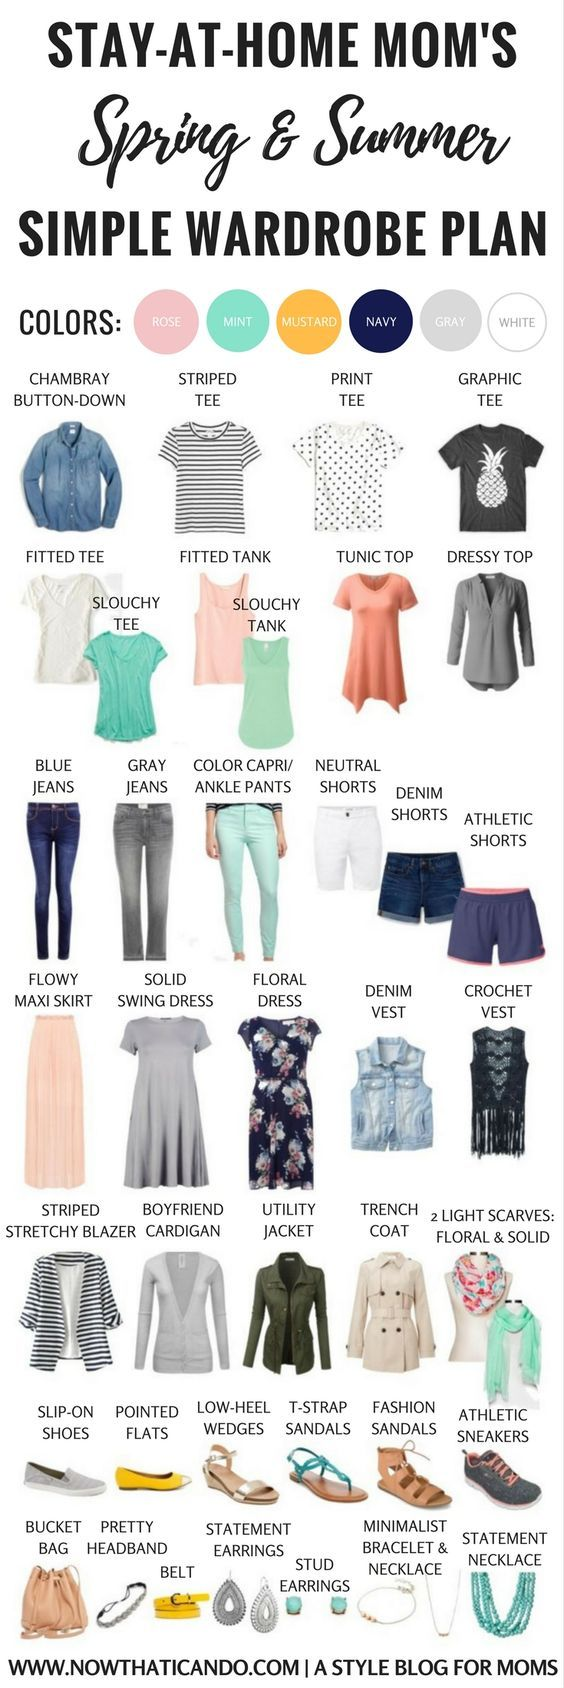 Basic Spring/Summer Capsule Wardrobe (86+ Outfits) For